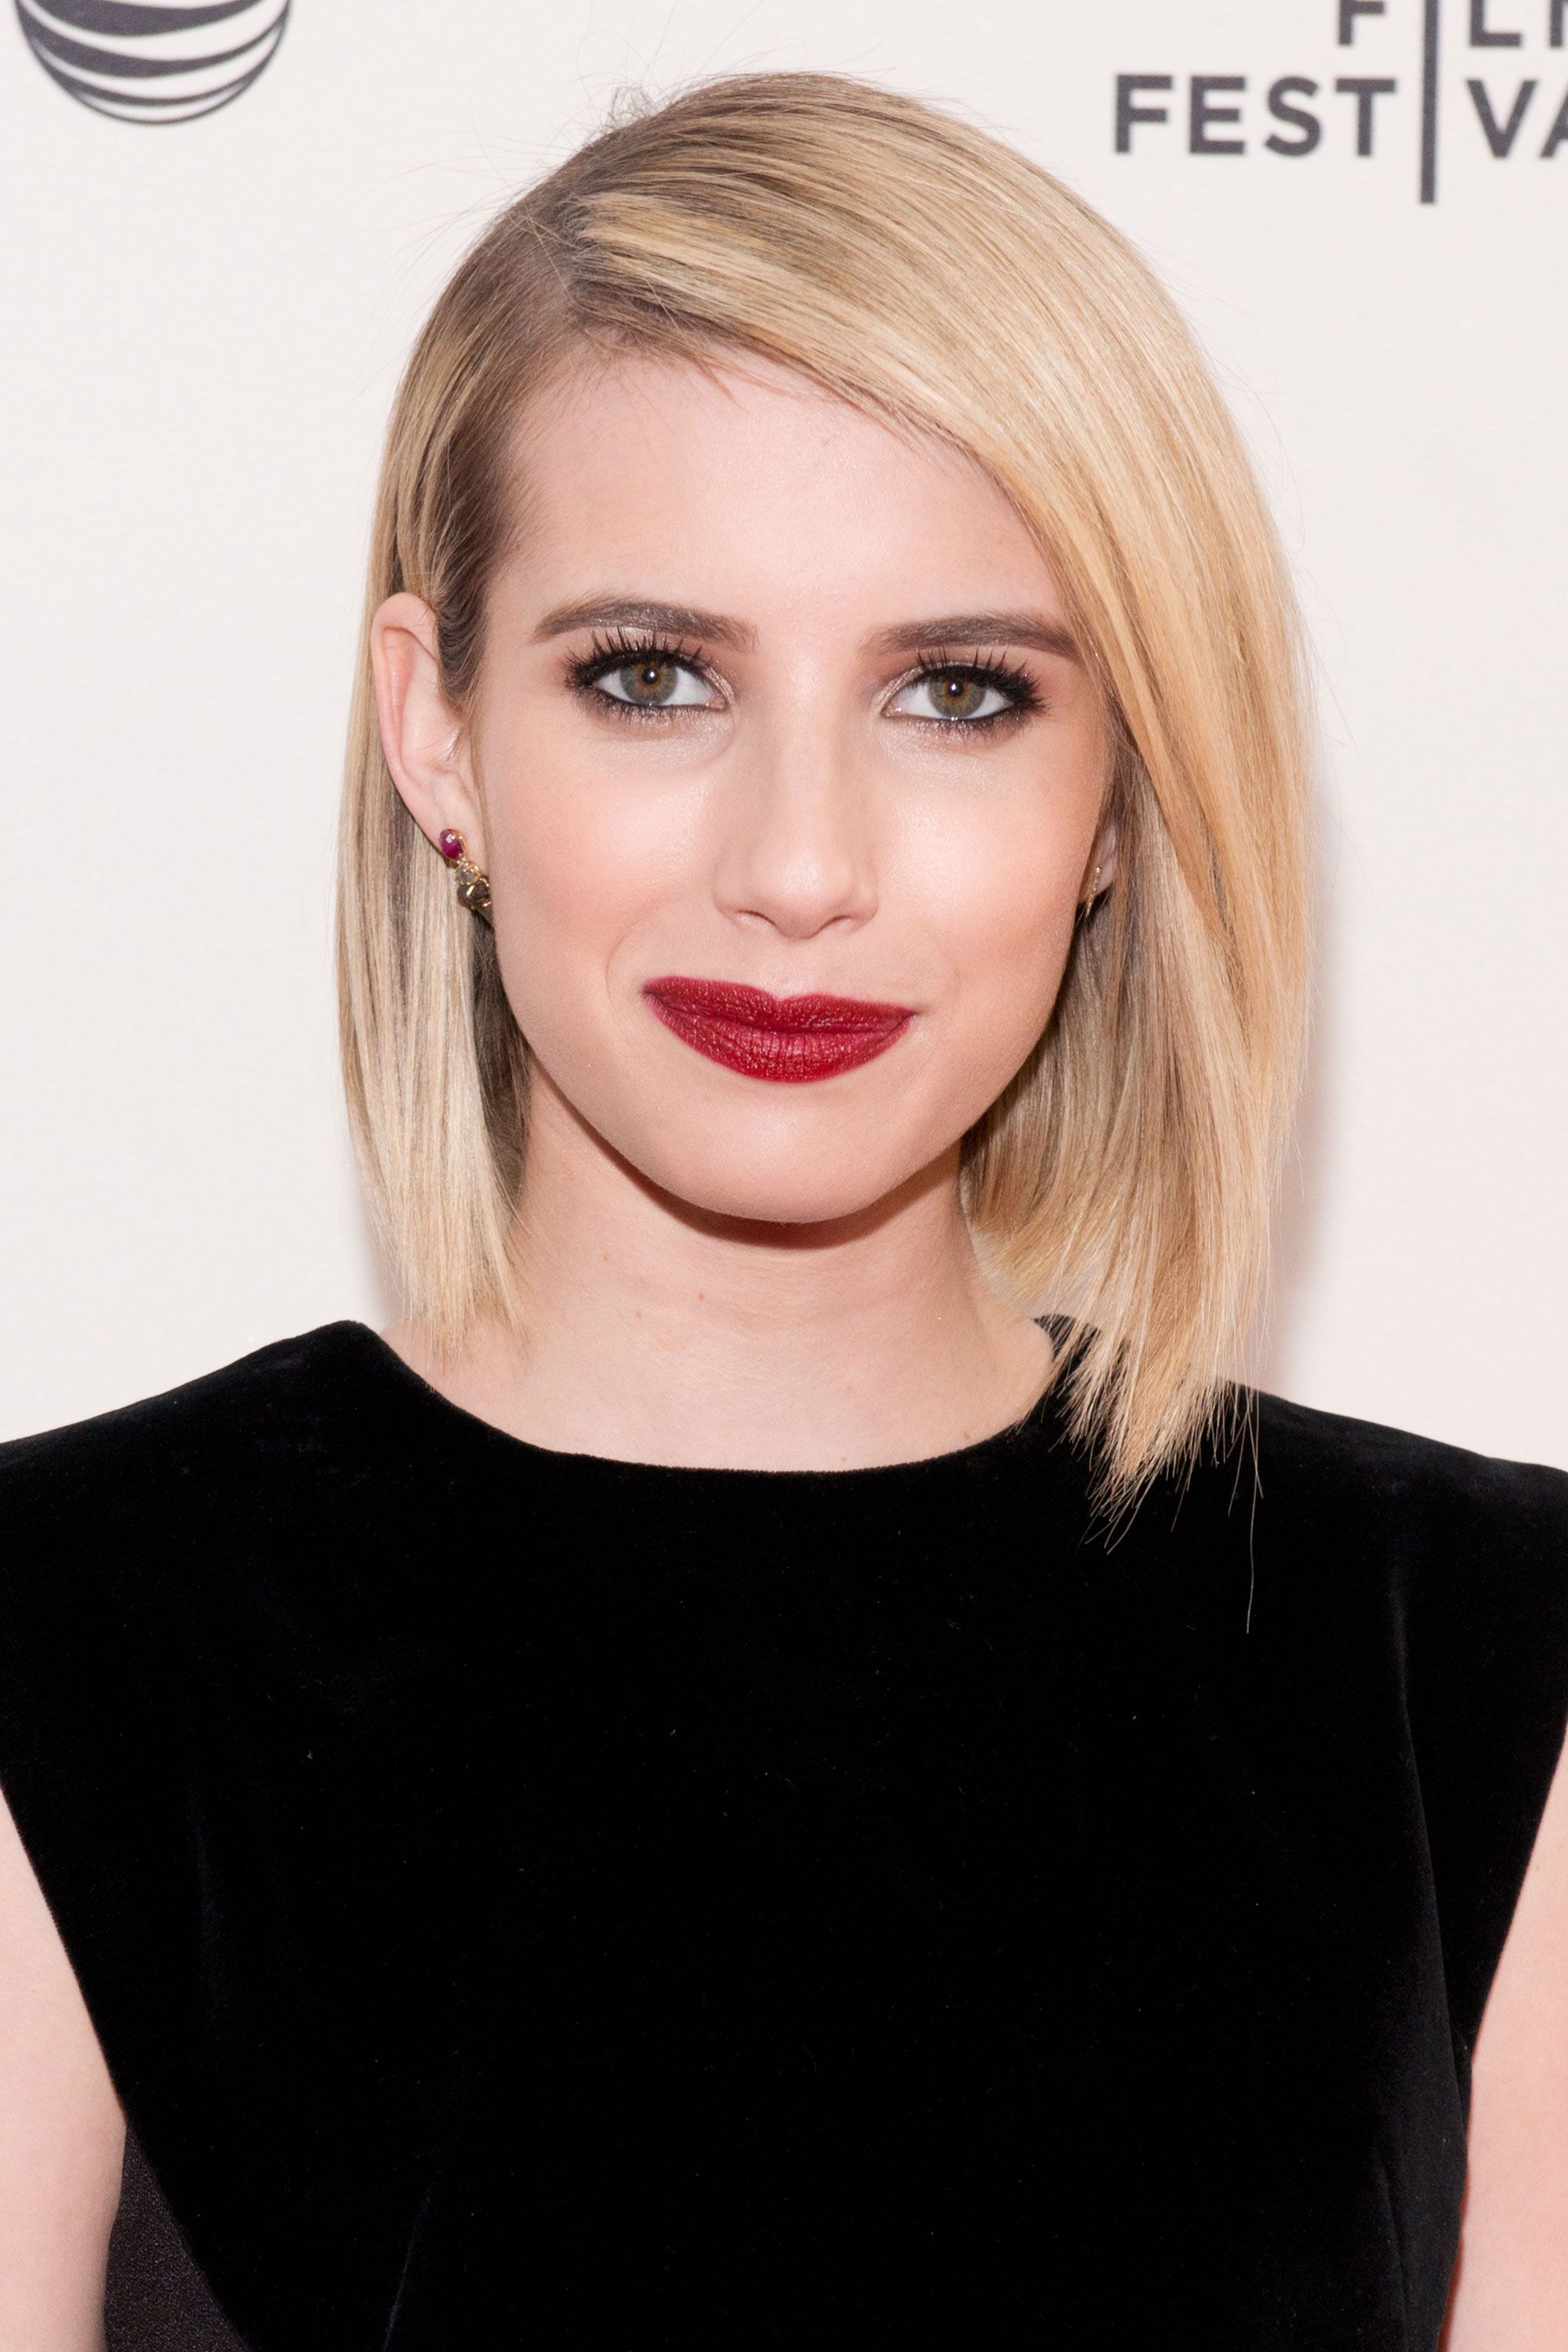 40 of the best blonde hair ideas   emma roberts, blondes and hair style